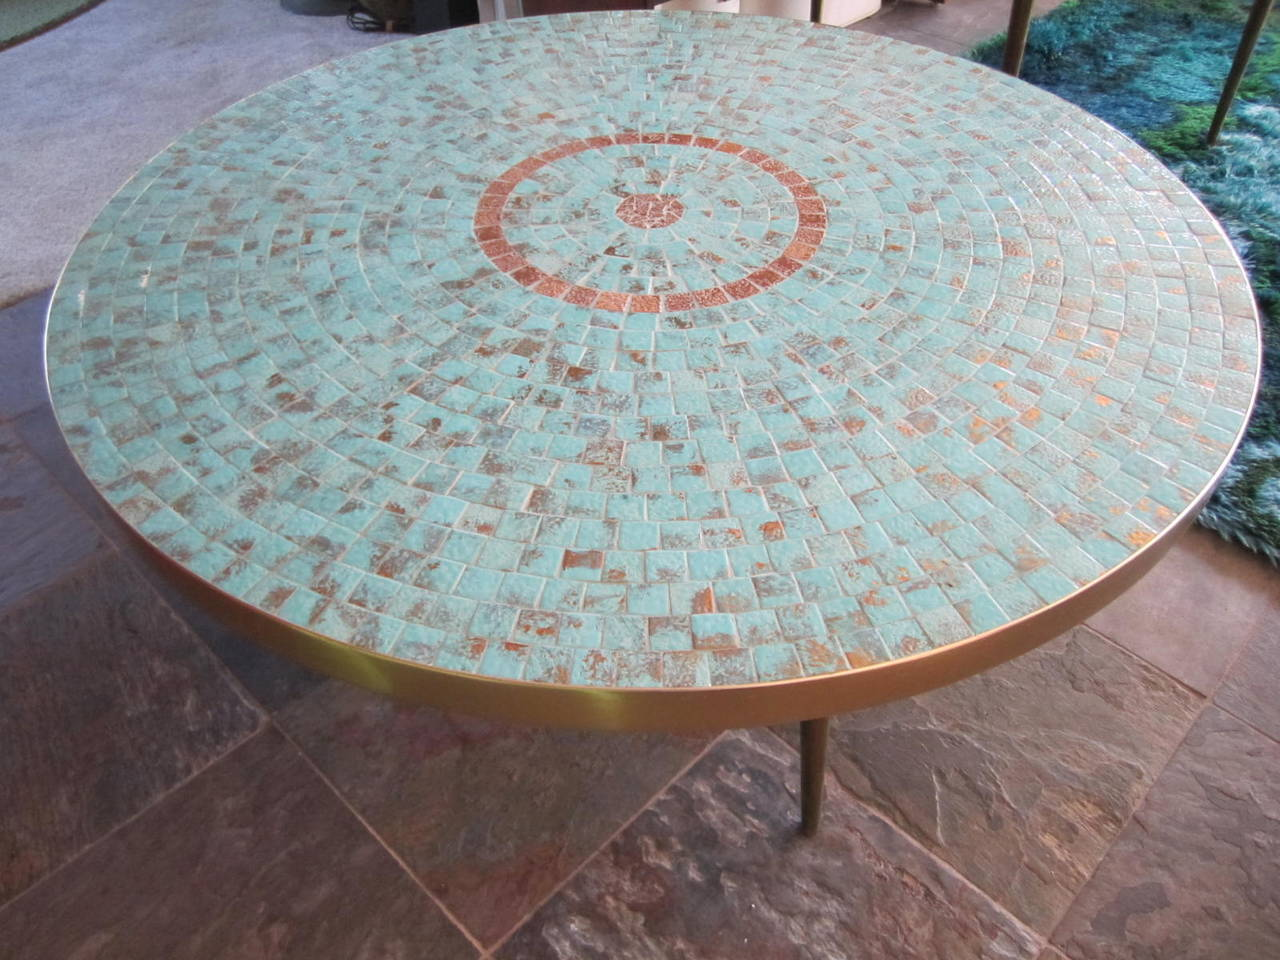 Stunning Mosaic Tile Top Tables Each Sold Separately. We Love The Two Tables  Together But